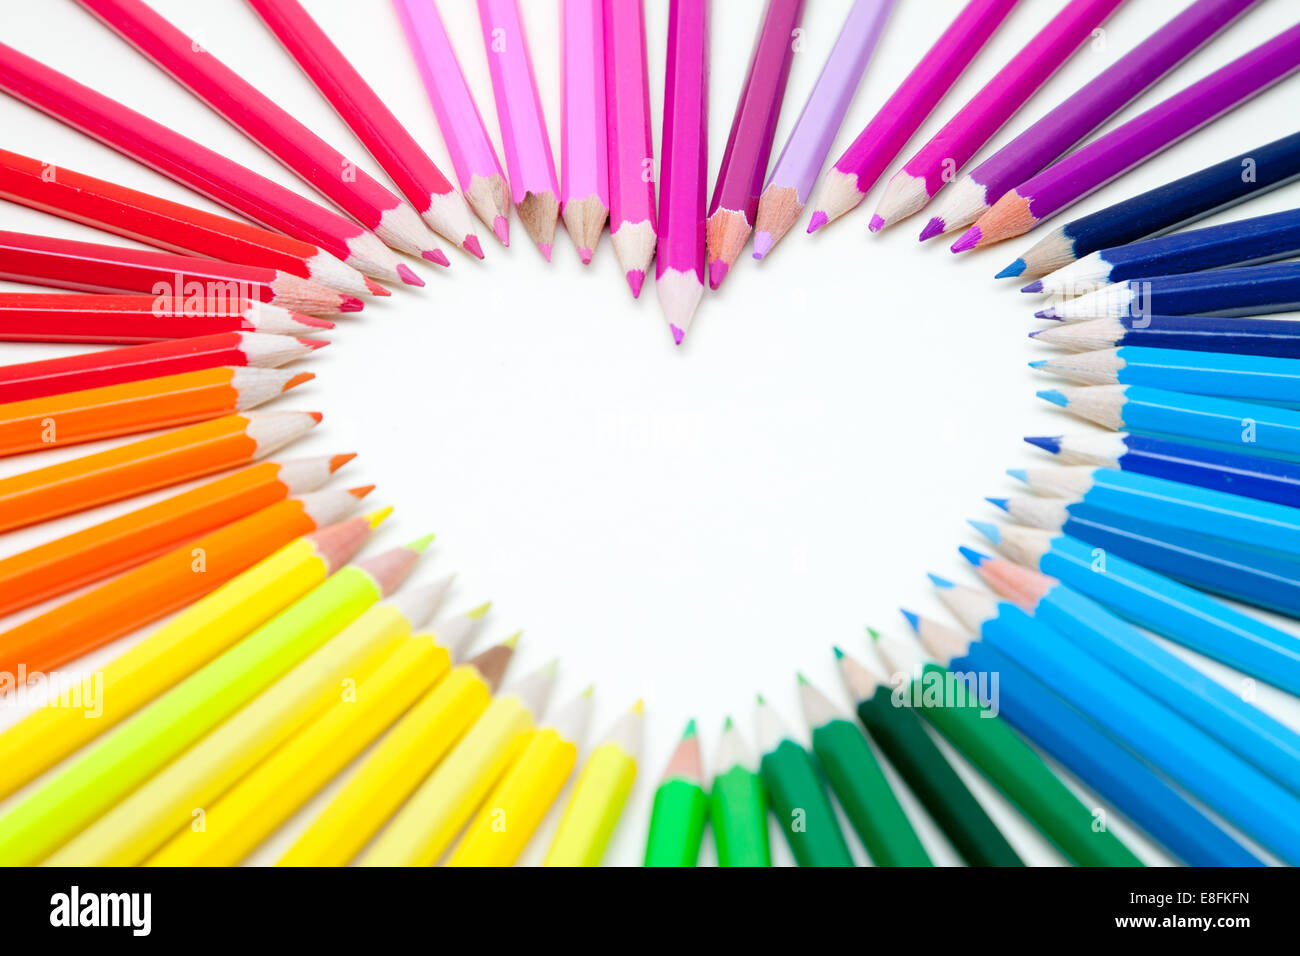 Pencils arranged in a heart shape - Stock Image